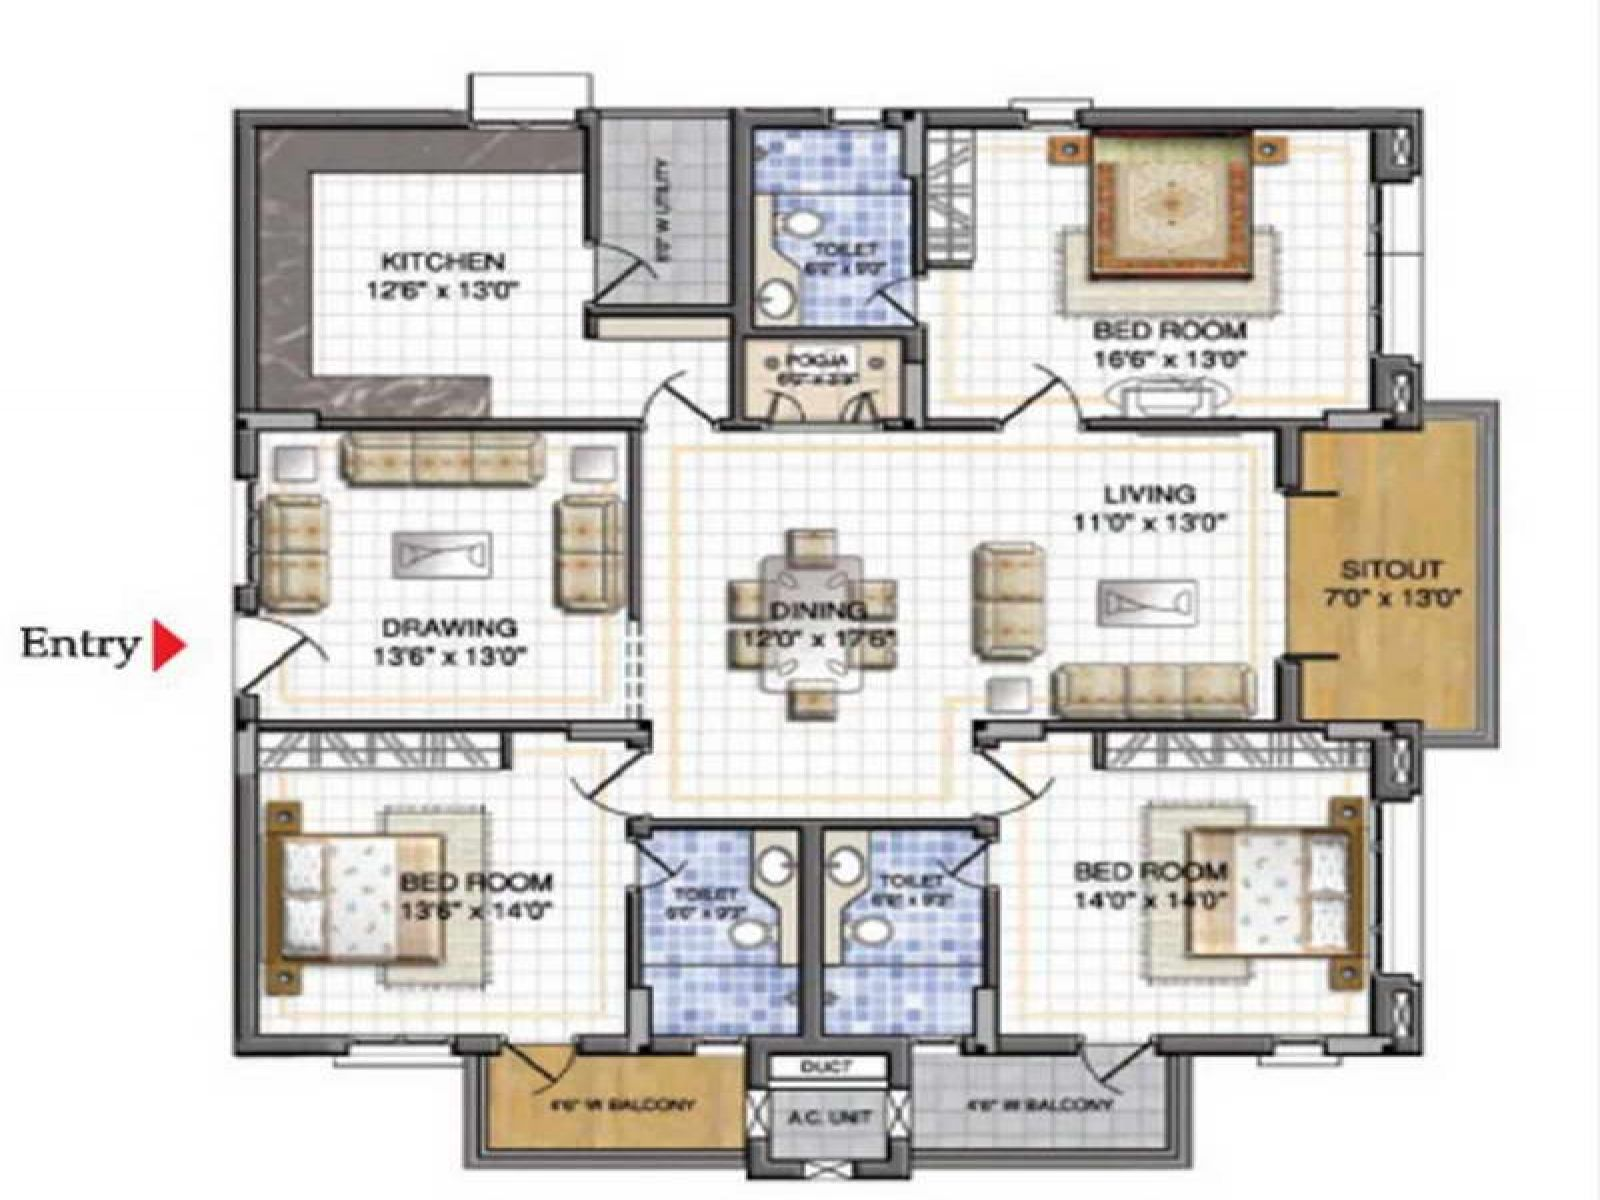 Awesome 17 Best Images About Home On Pinterest House Plans Bedroom Largest Home Design Picture Inspirations Pitcheantrous